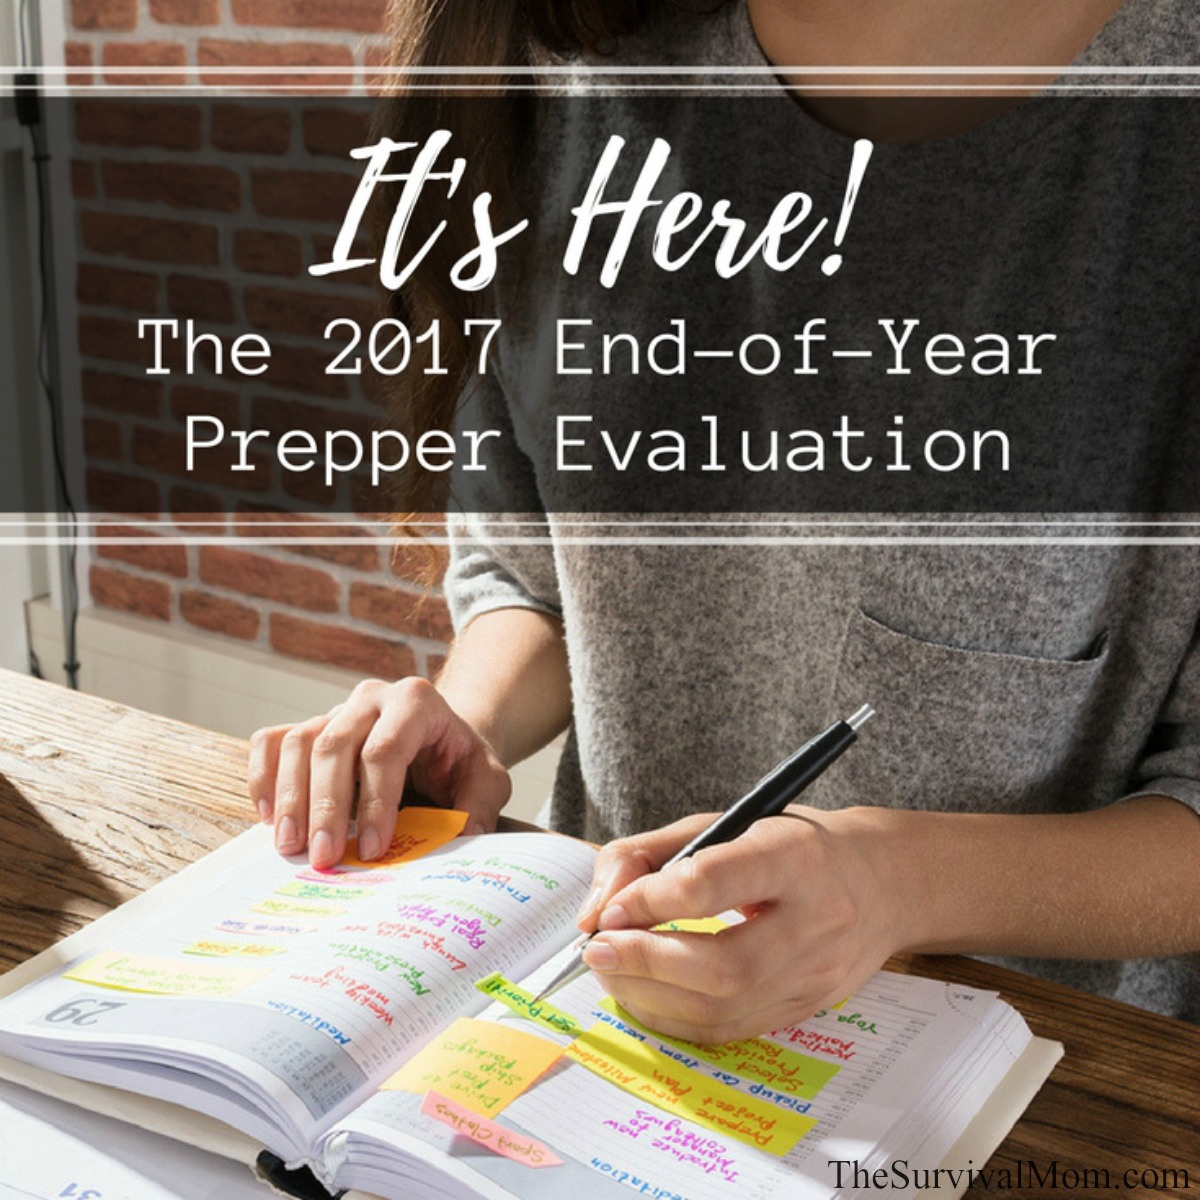 Prepper evaluation